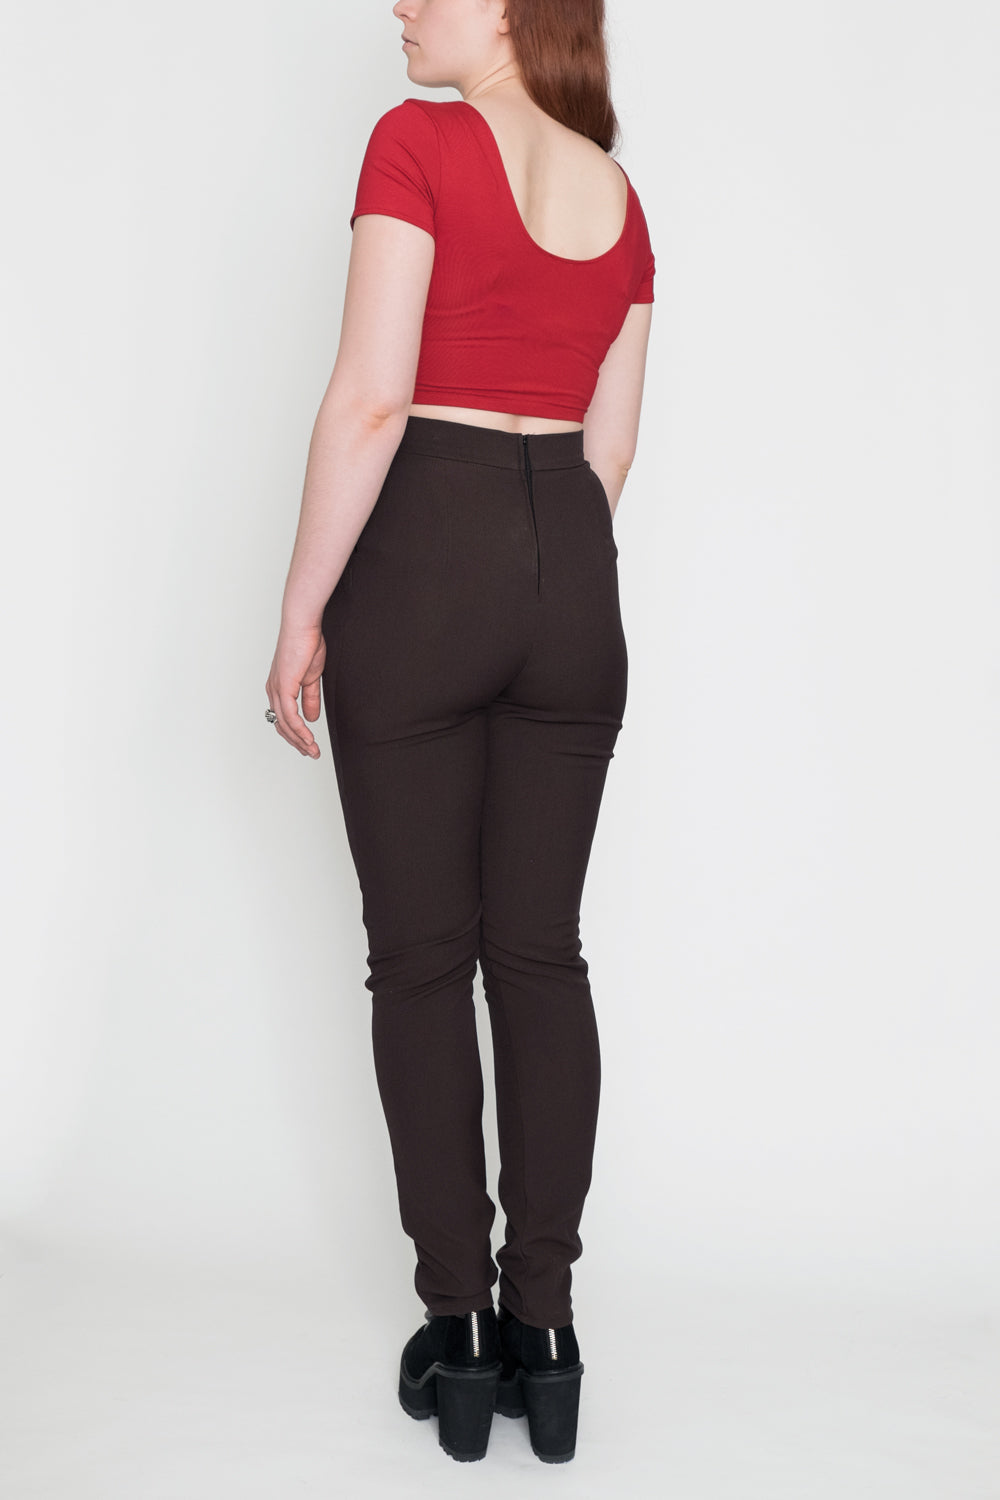 L.A. Woman | High-Waisted Pants | Brown